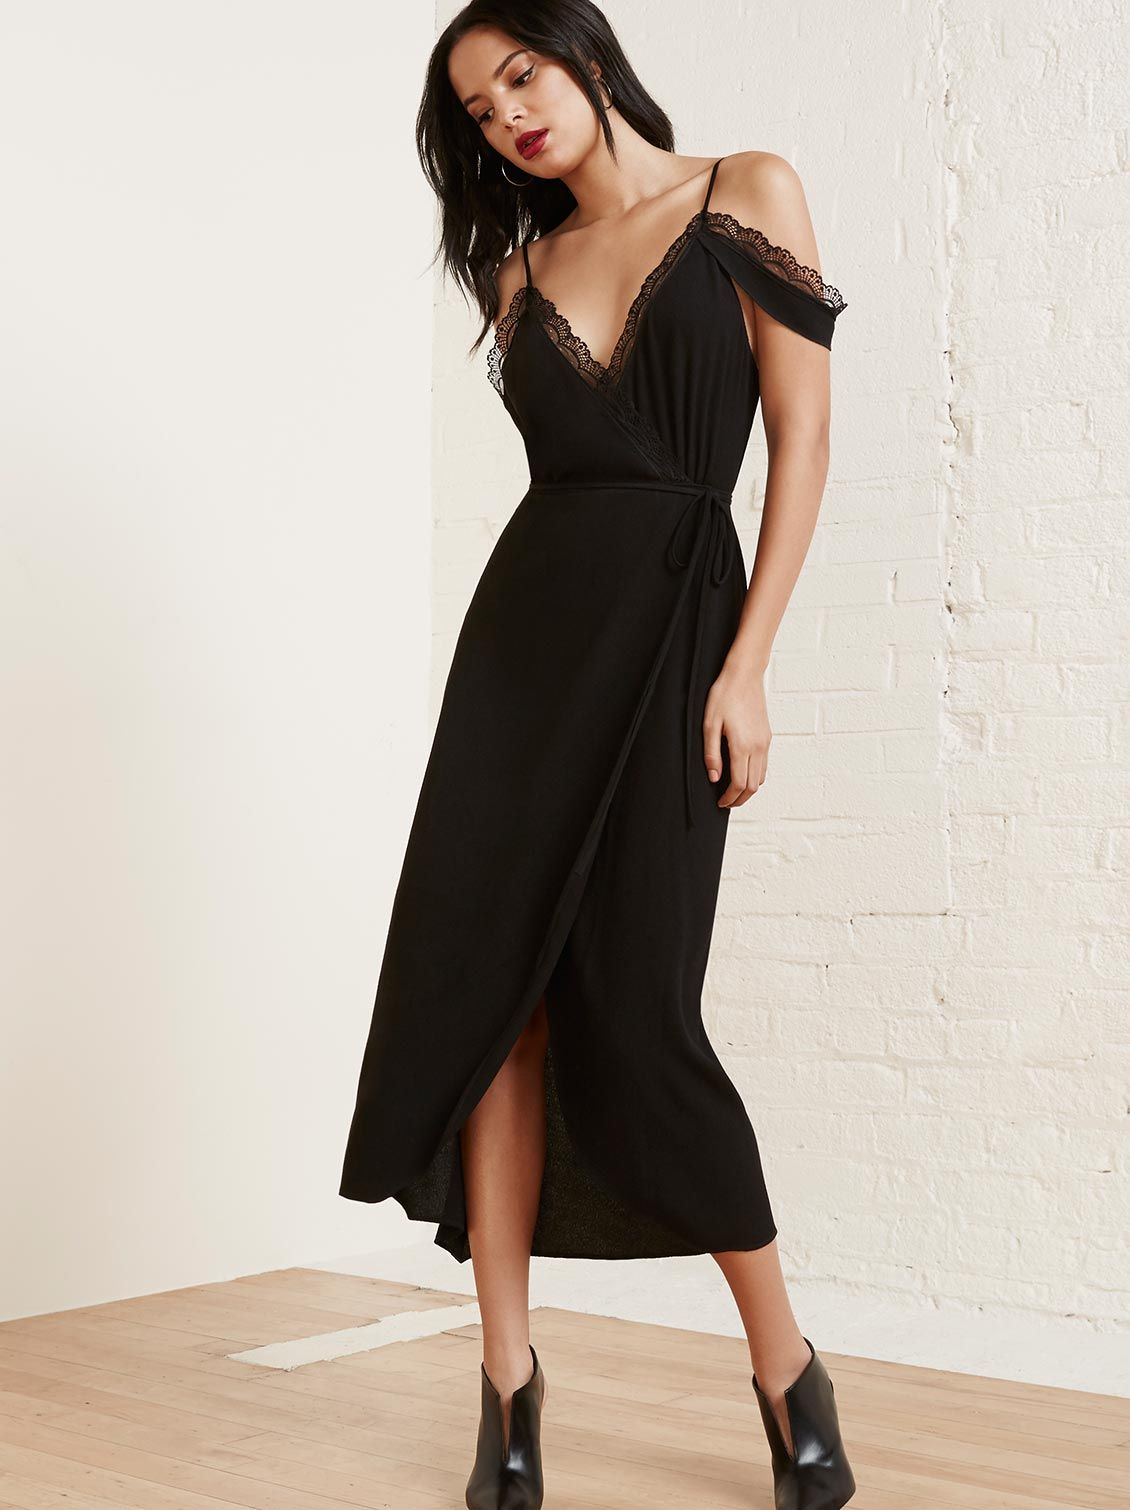 The Eleanor Dress https://www.thereformation.com/new?utm_source=pinterest&utm_medium=organic&utm_campaign=PinterestOwnedPins